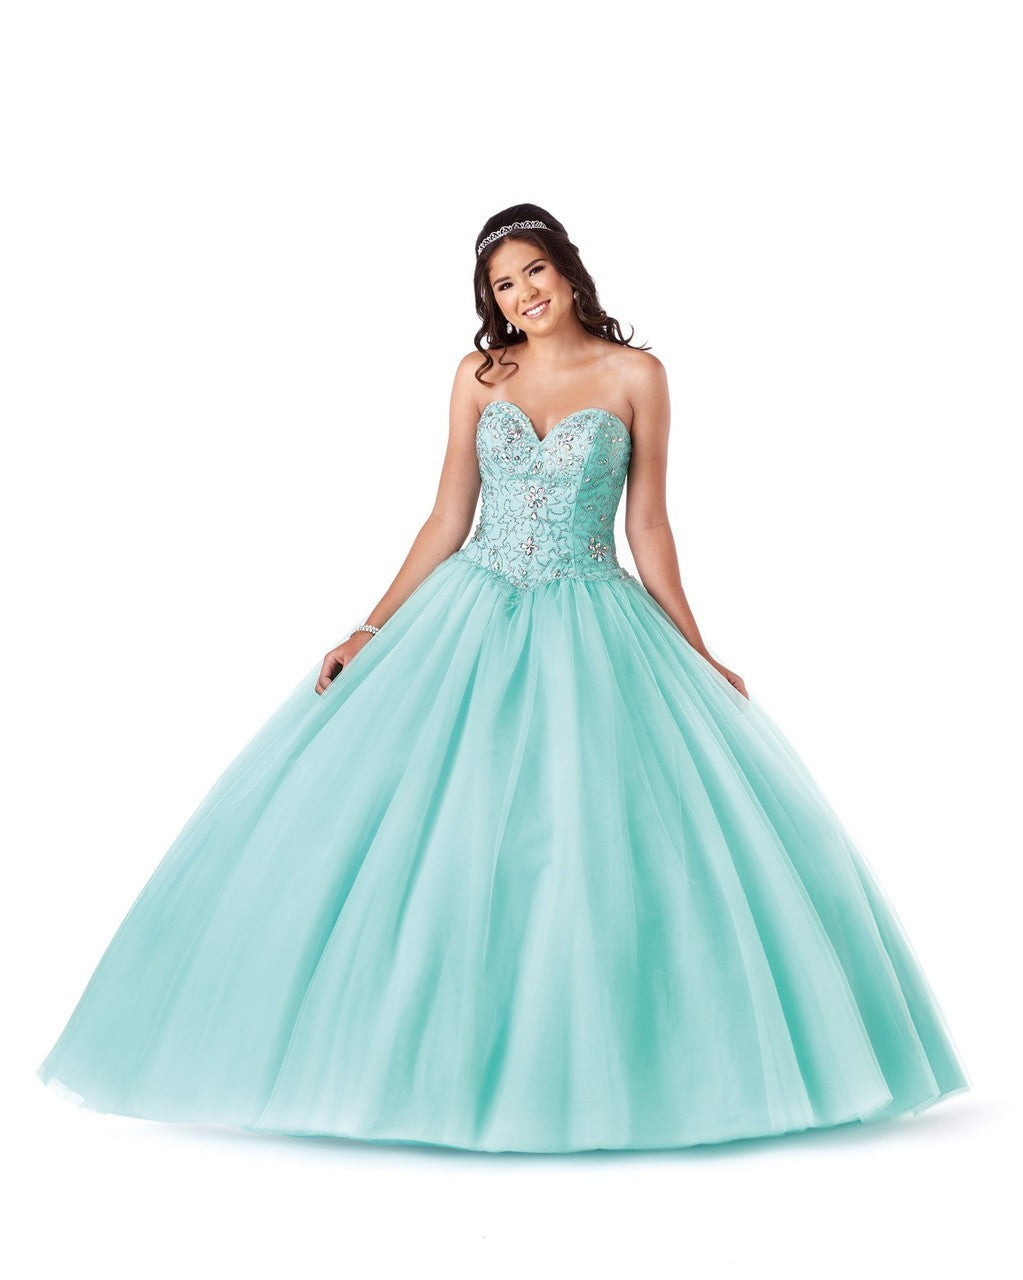 Full Tulle Quinceañera Ball Gown with Beaded Bodice and Sweethear ...